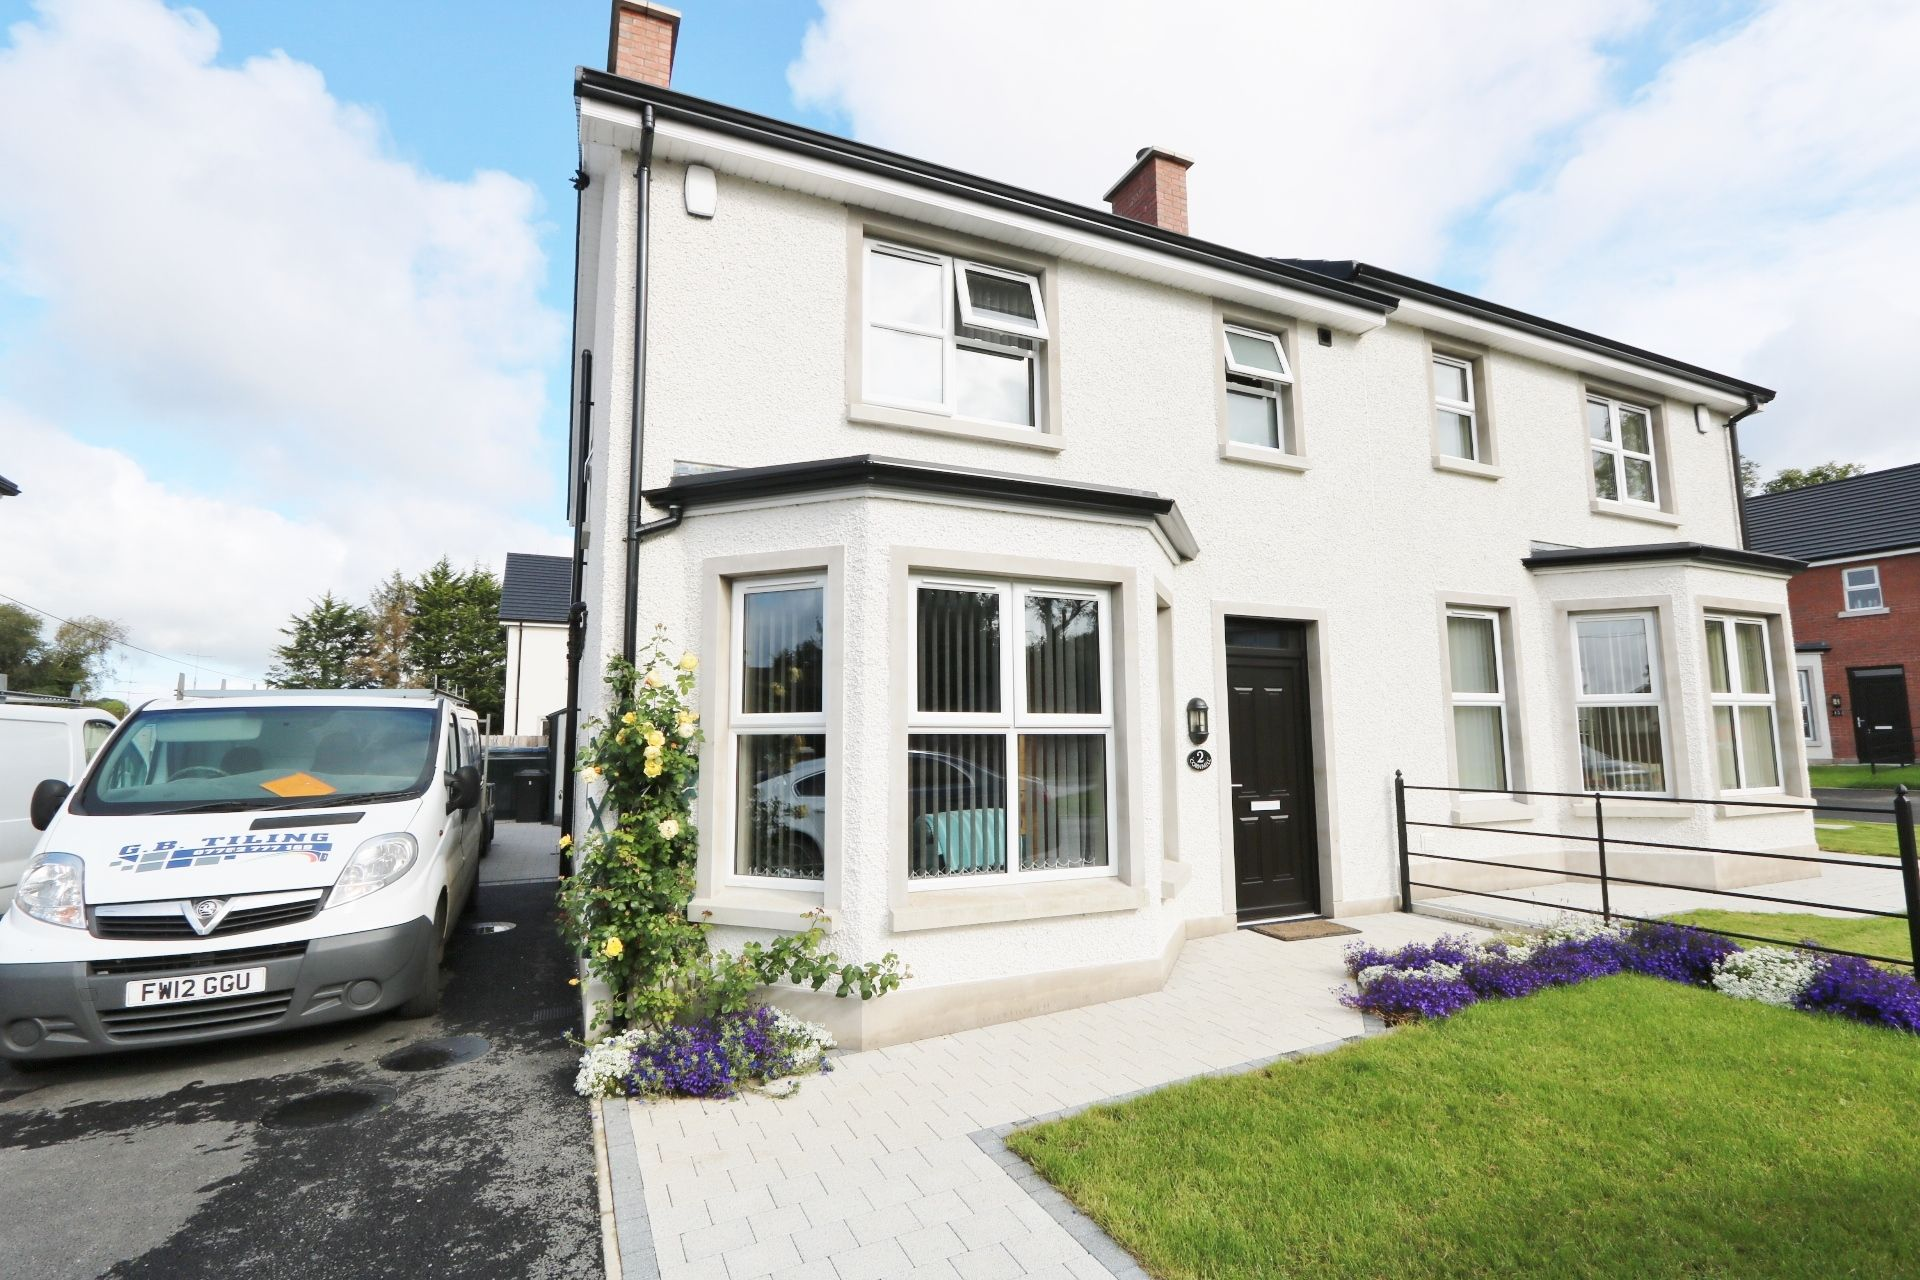 3 bedroom semi-detached house For Sale in Milltown, Randalstown - Photograph 1